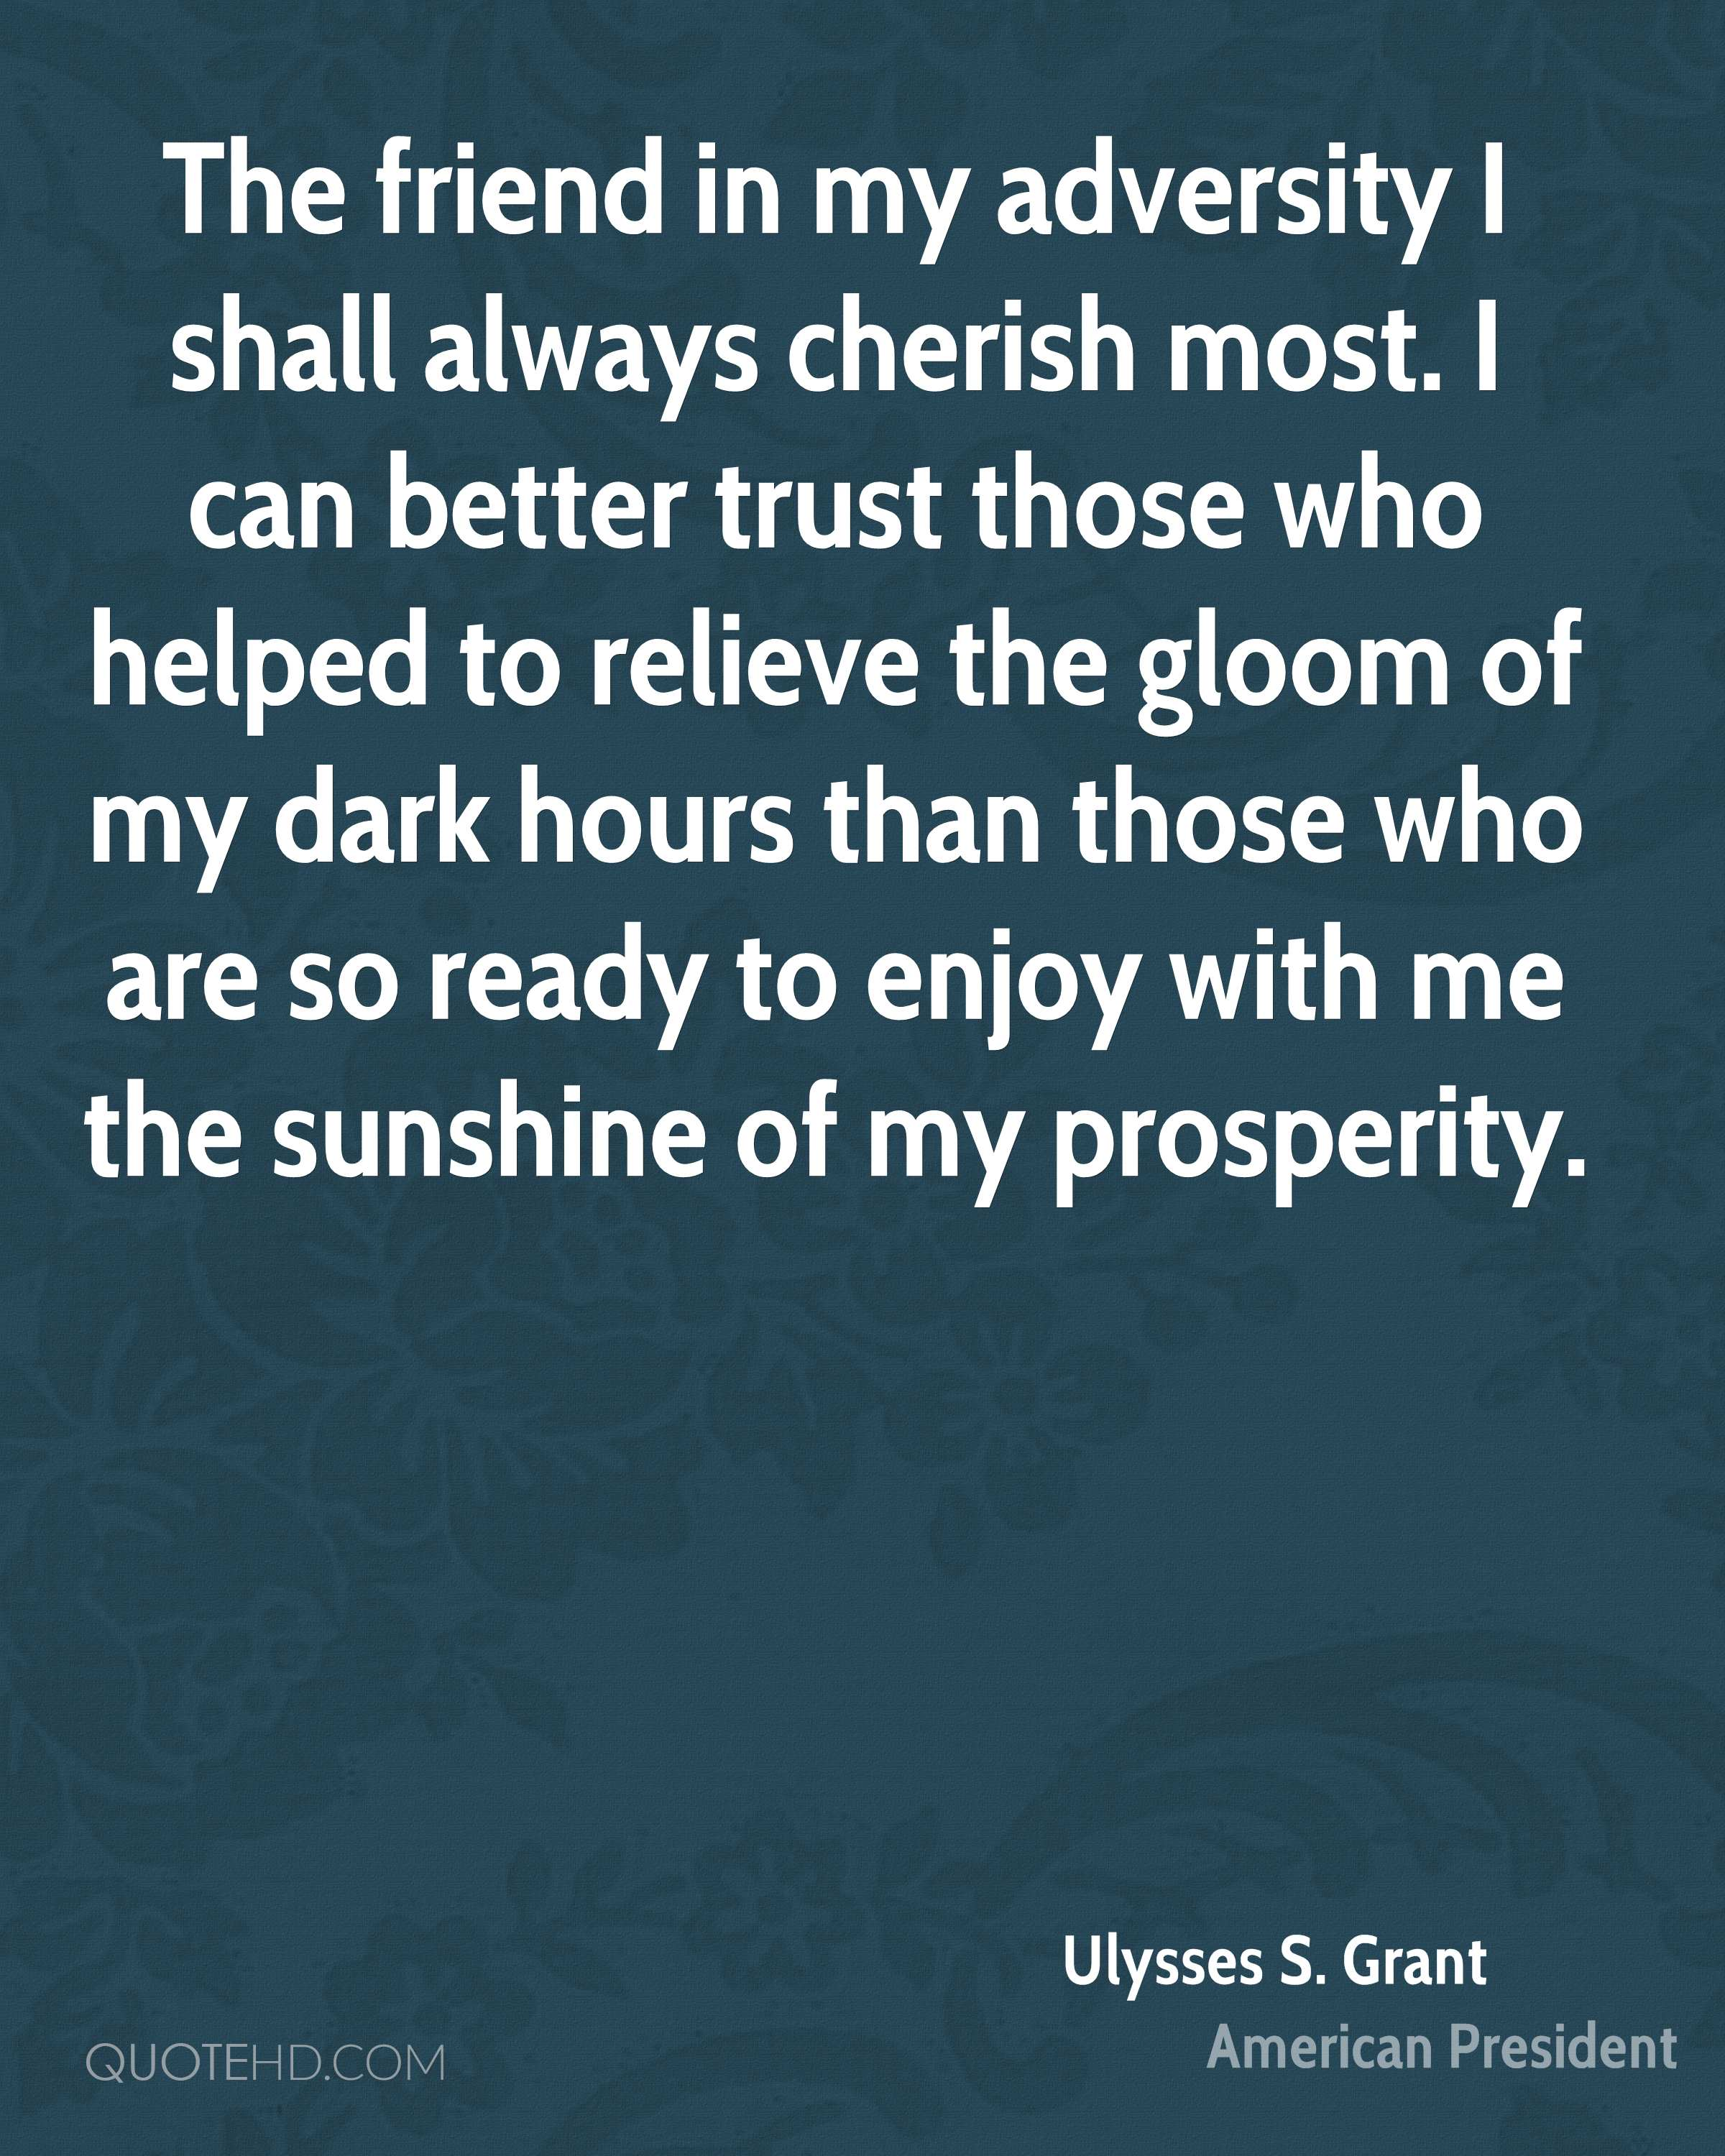 The friend in my adversity I shall always cherish most. I can better trust those who helped to relieve the gloom of my dark hours than those who are so ready to enjoy with me the sunshine of my prosperity.